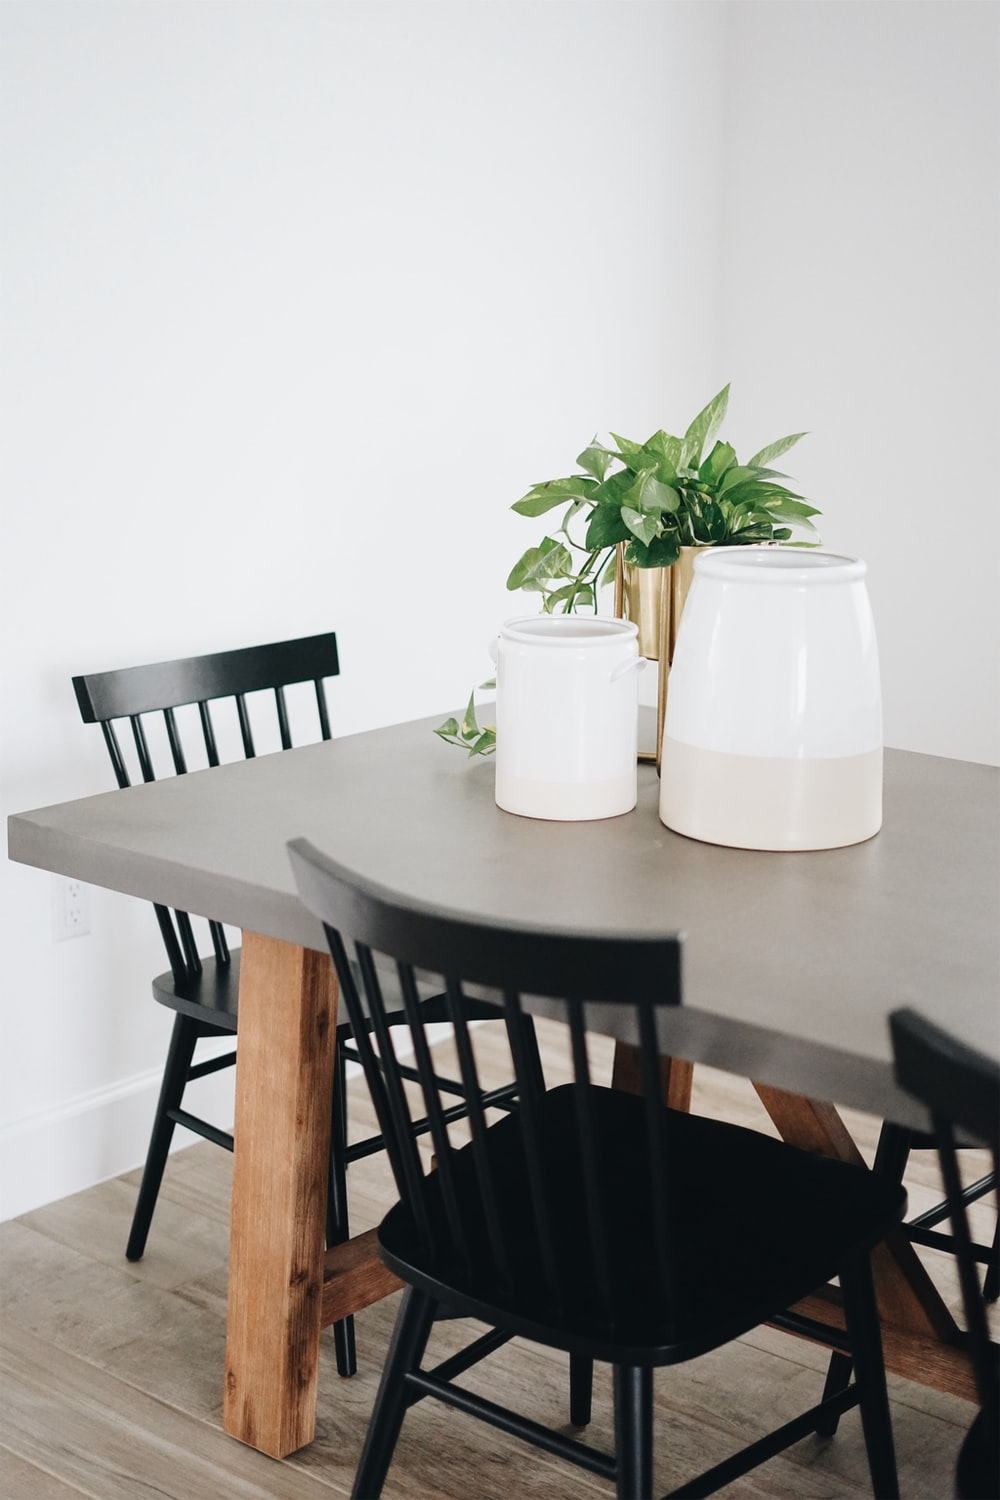 rectangular black wooden table with chairs